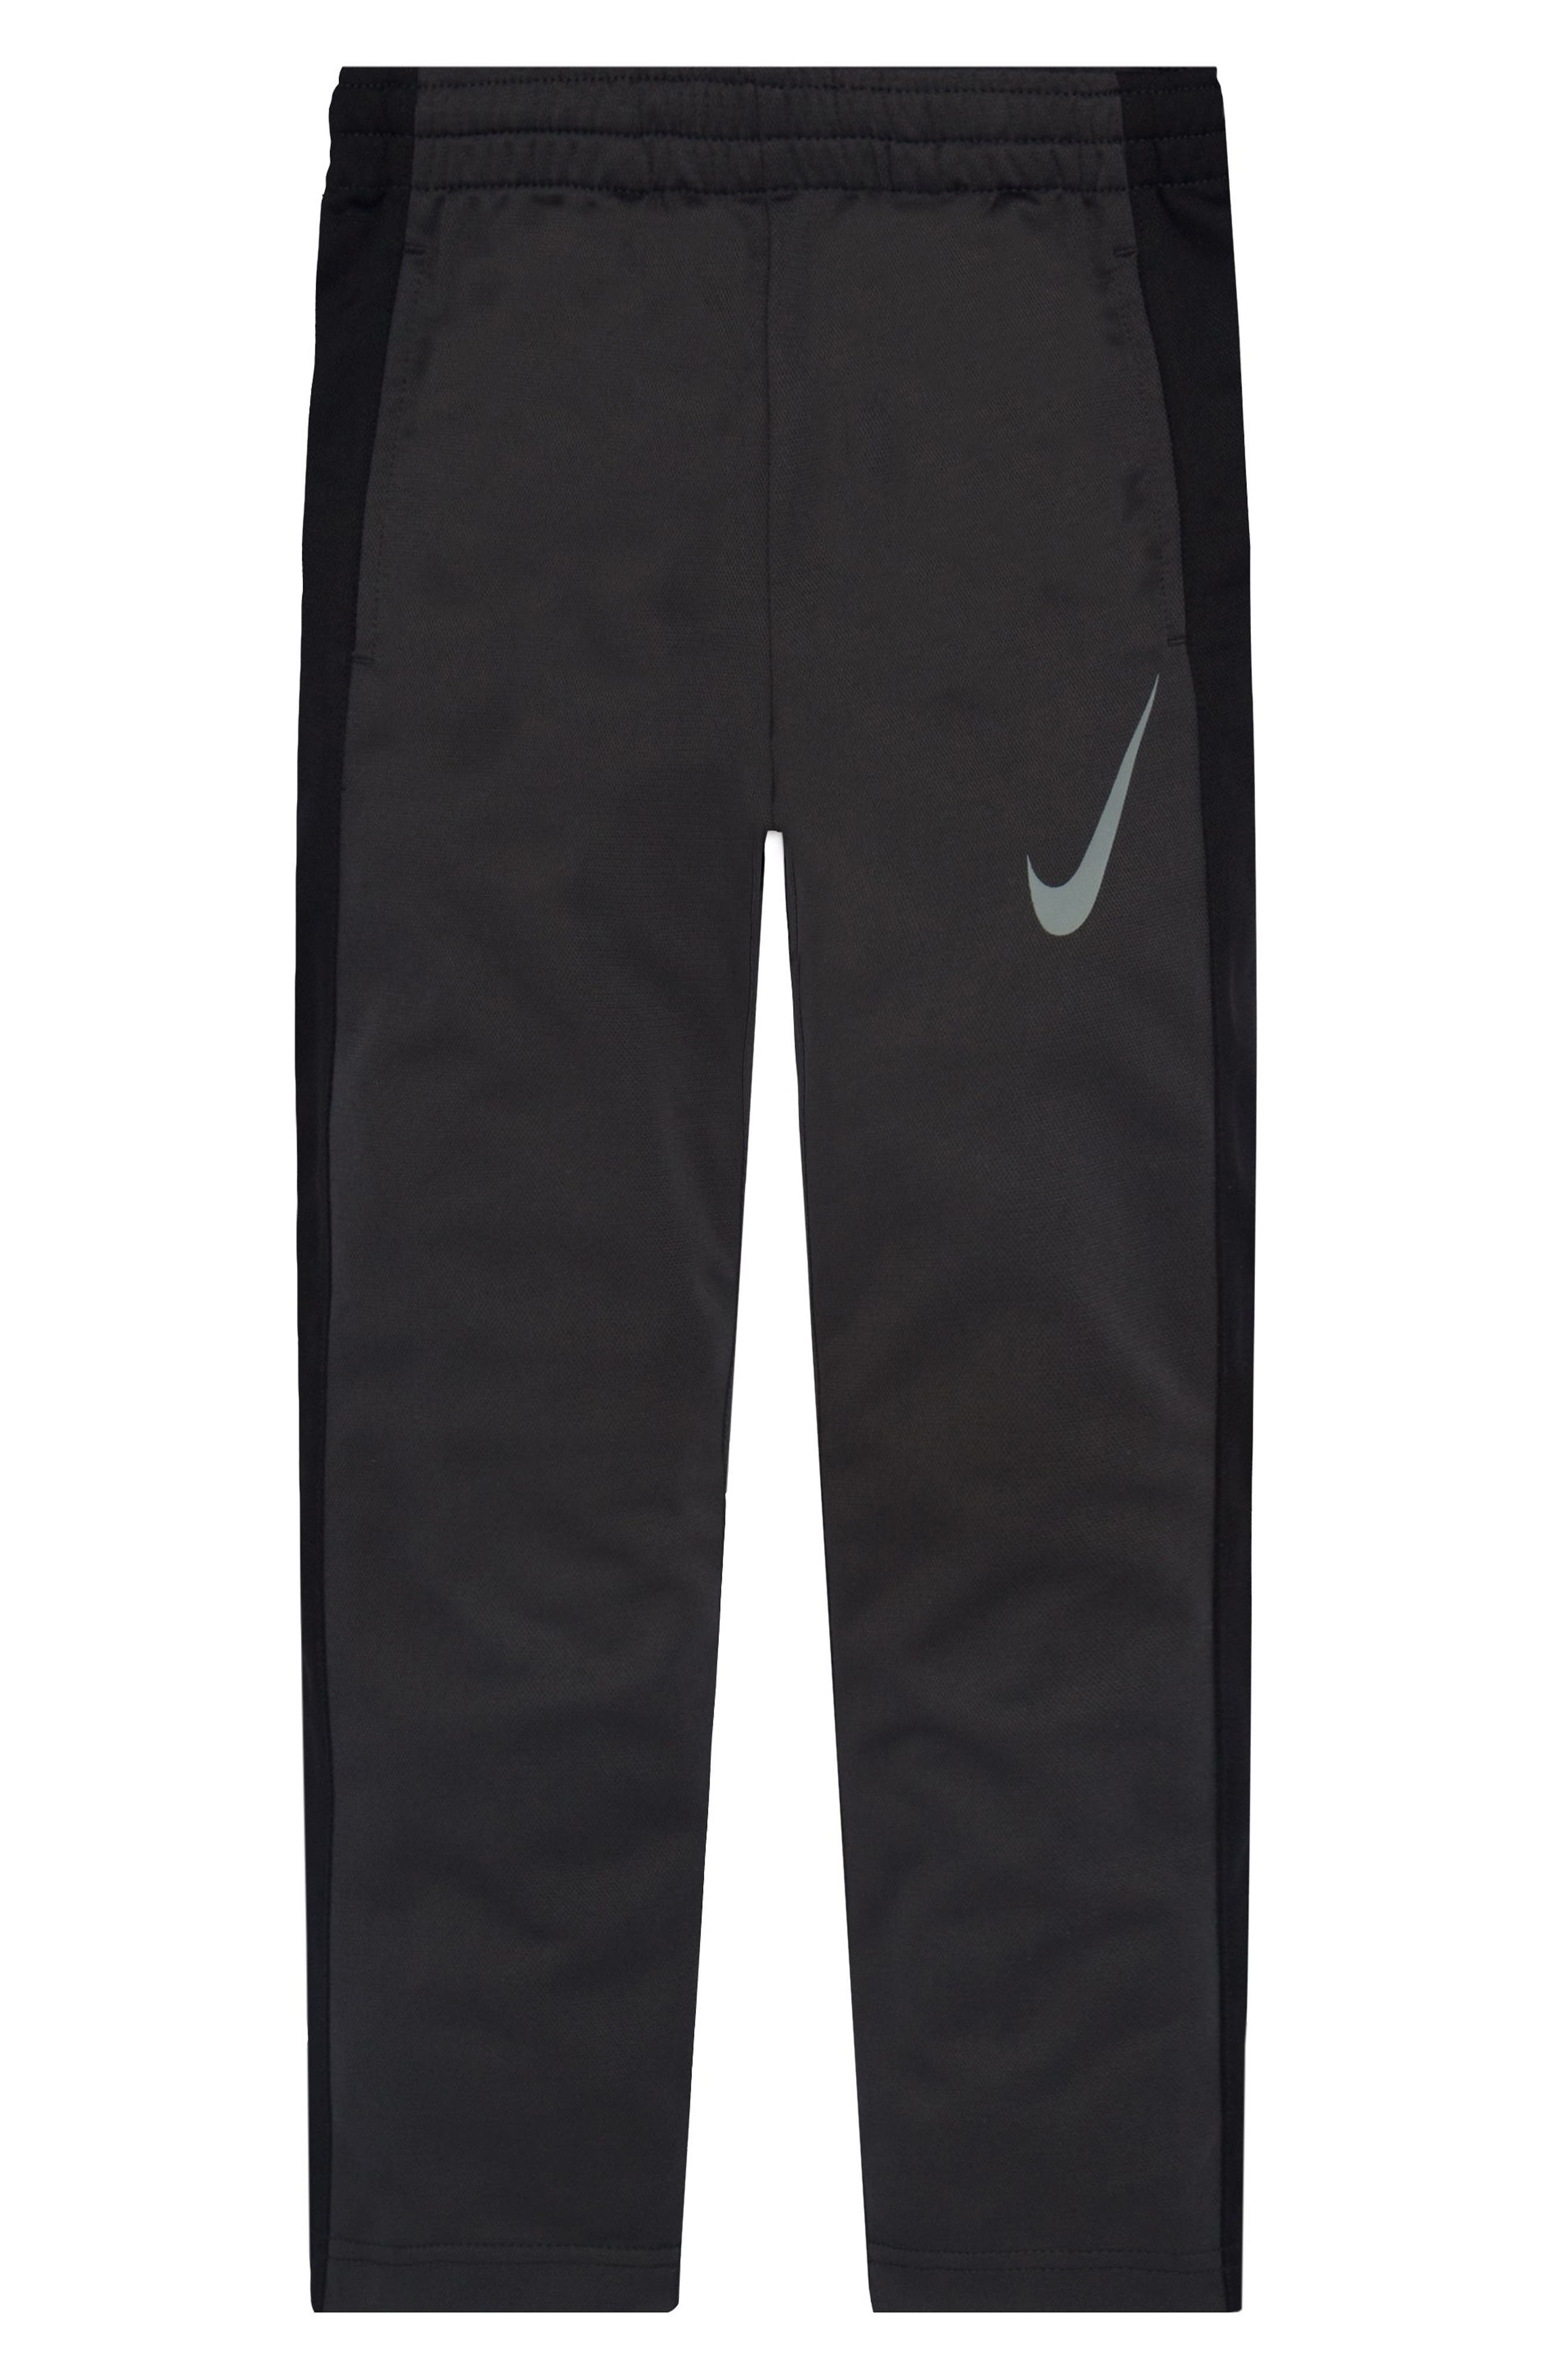 Main Image - Nike Performance Knit Track Pants (Toddler Boys & Little Boys)